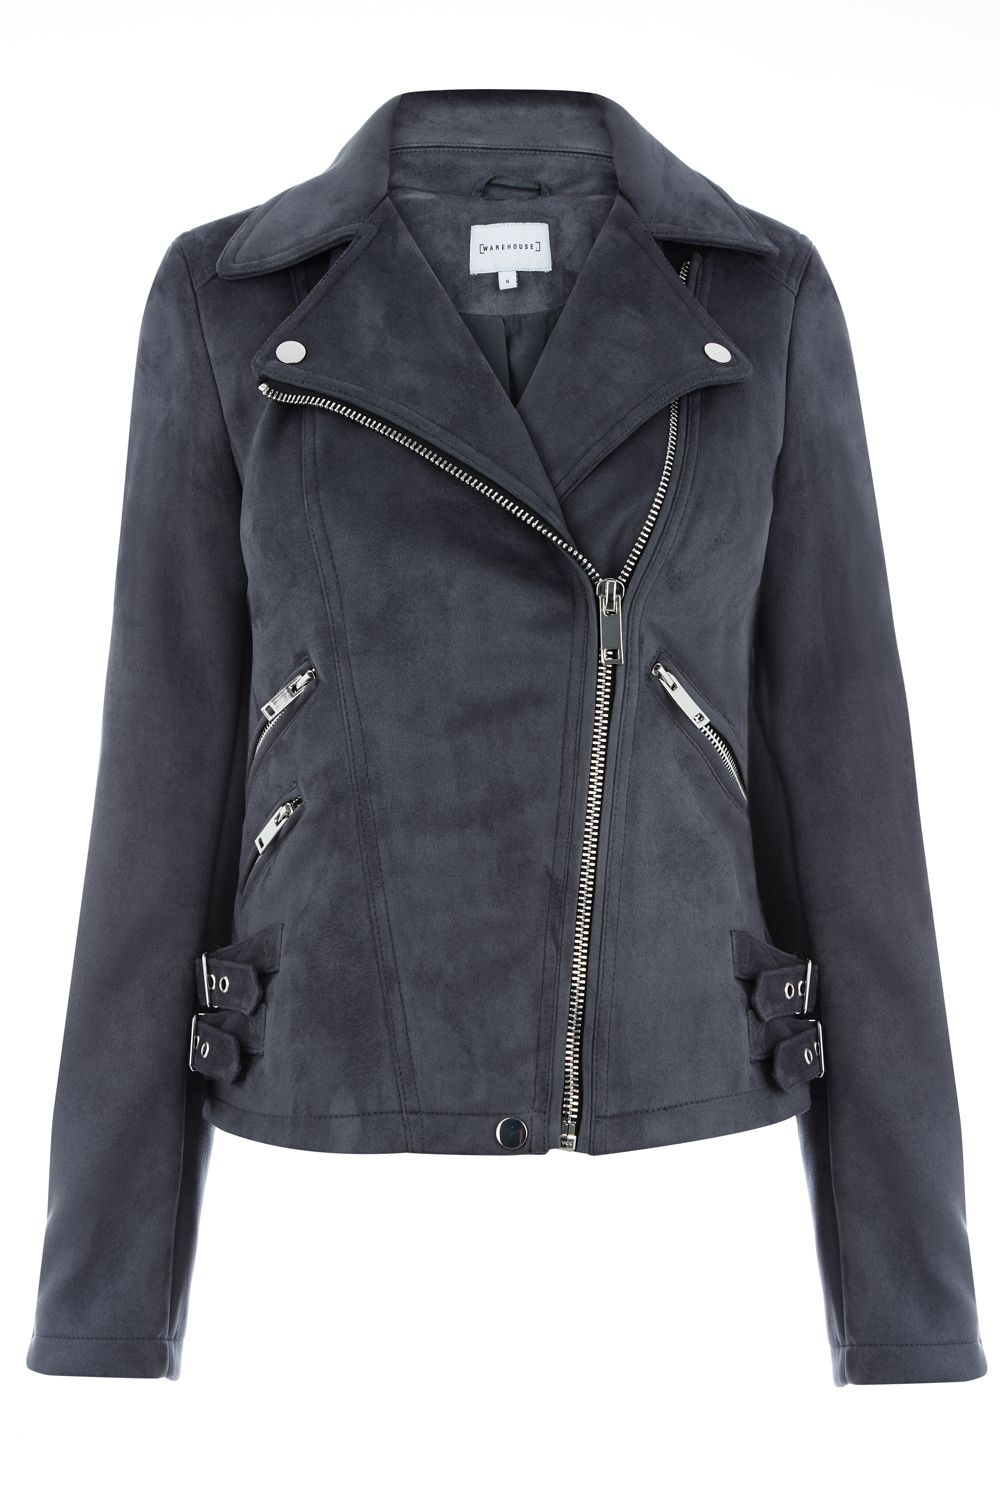 Warehouse Suedette Biker, Dark Grey